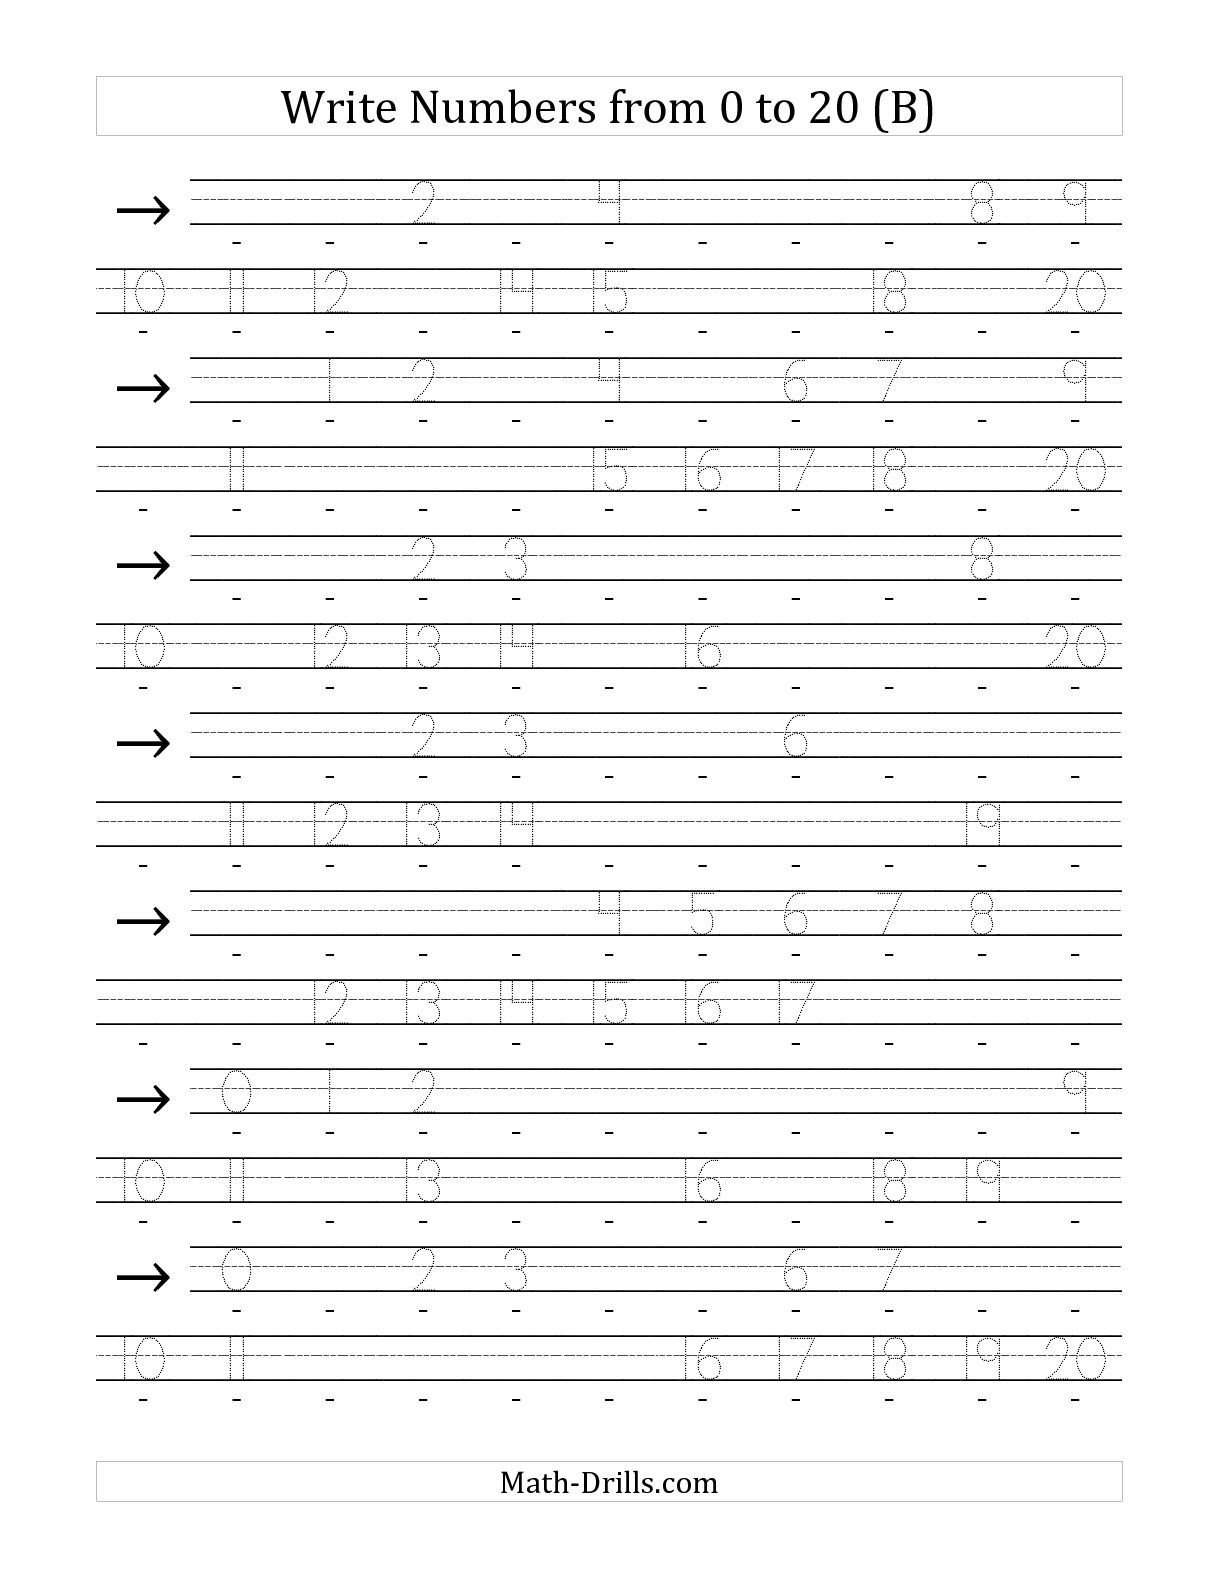 The Writing Numerals From 0 To 20 36pt B Math Worksheet